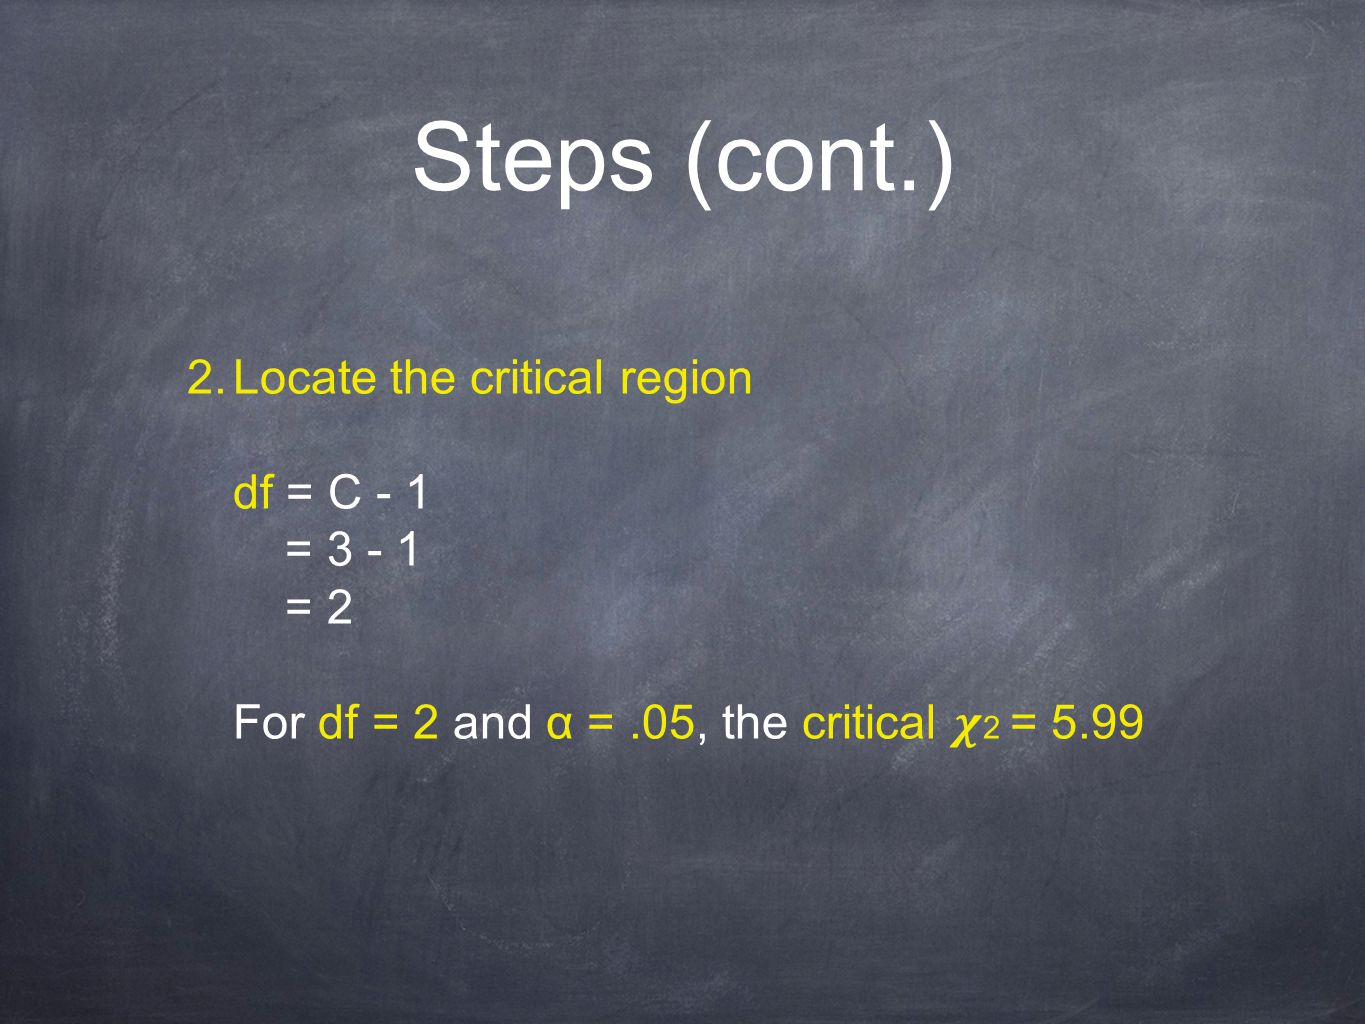 Steps (cont.) 2. Locate the critical region df = C - 1 = 3 - 1 = 2 For df = 2 and α =.05, the critical 2 = 5.99